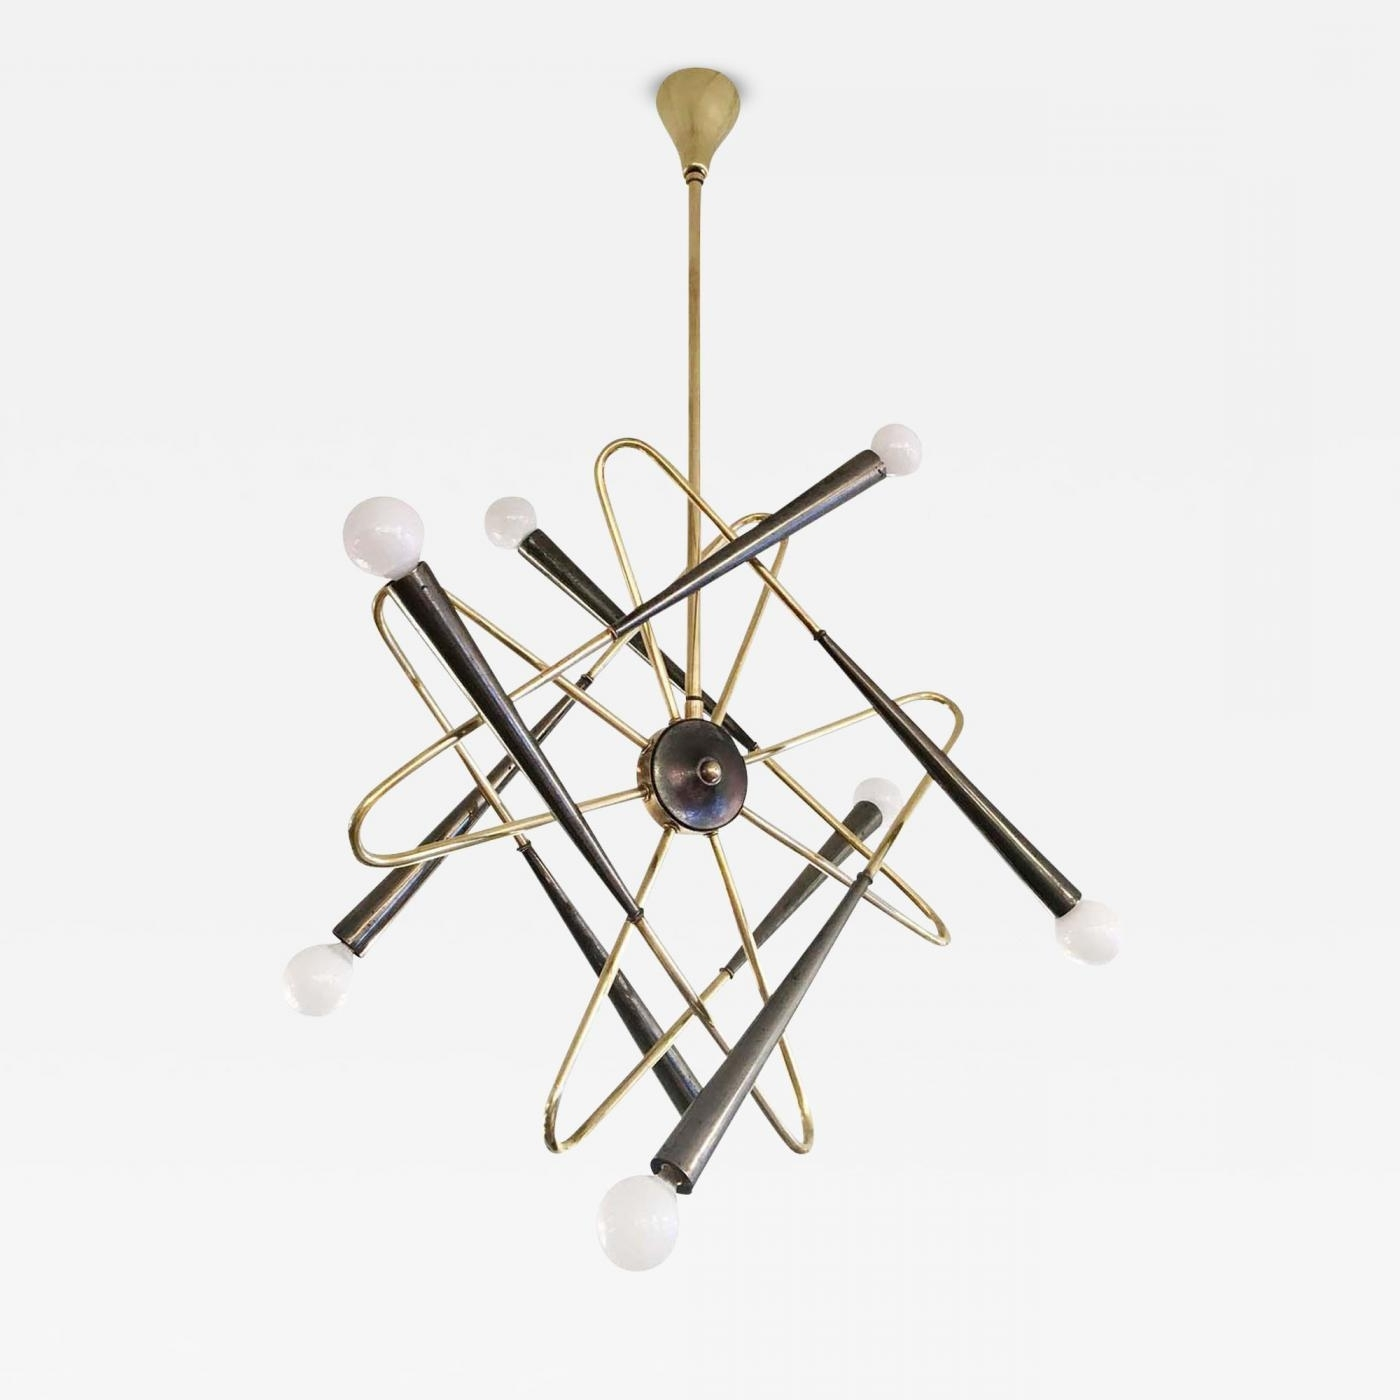 Unusual Chandeliers Throughout Latest Chandelier: Glamorous Whimsical Chandeliers Whimsical Chandeliers (View 11 of 20)